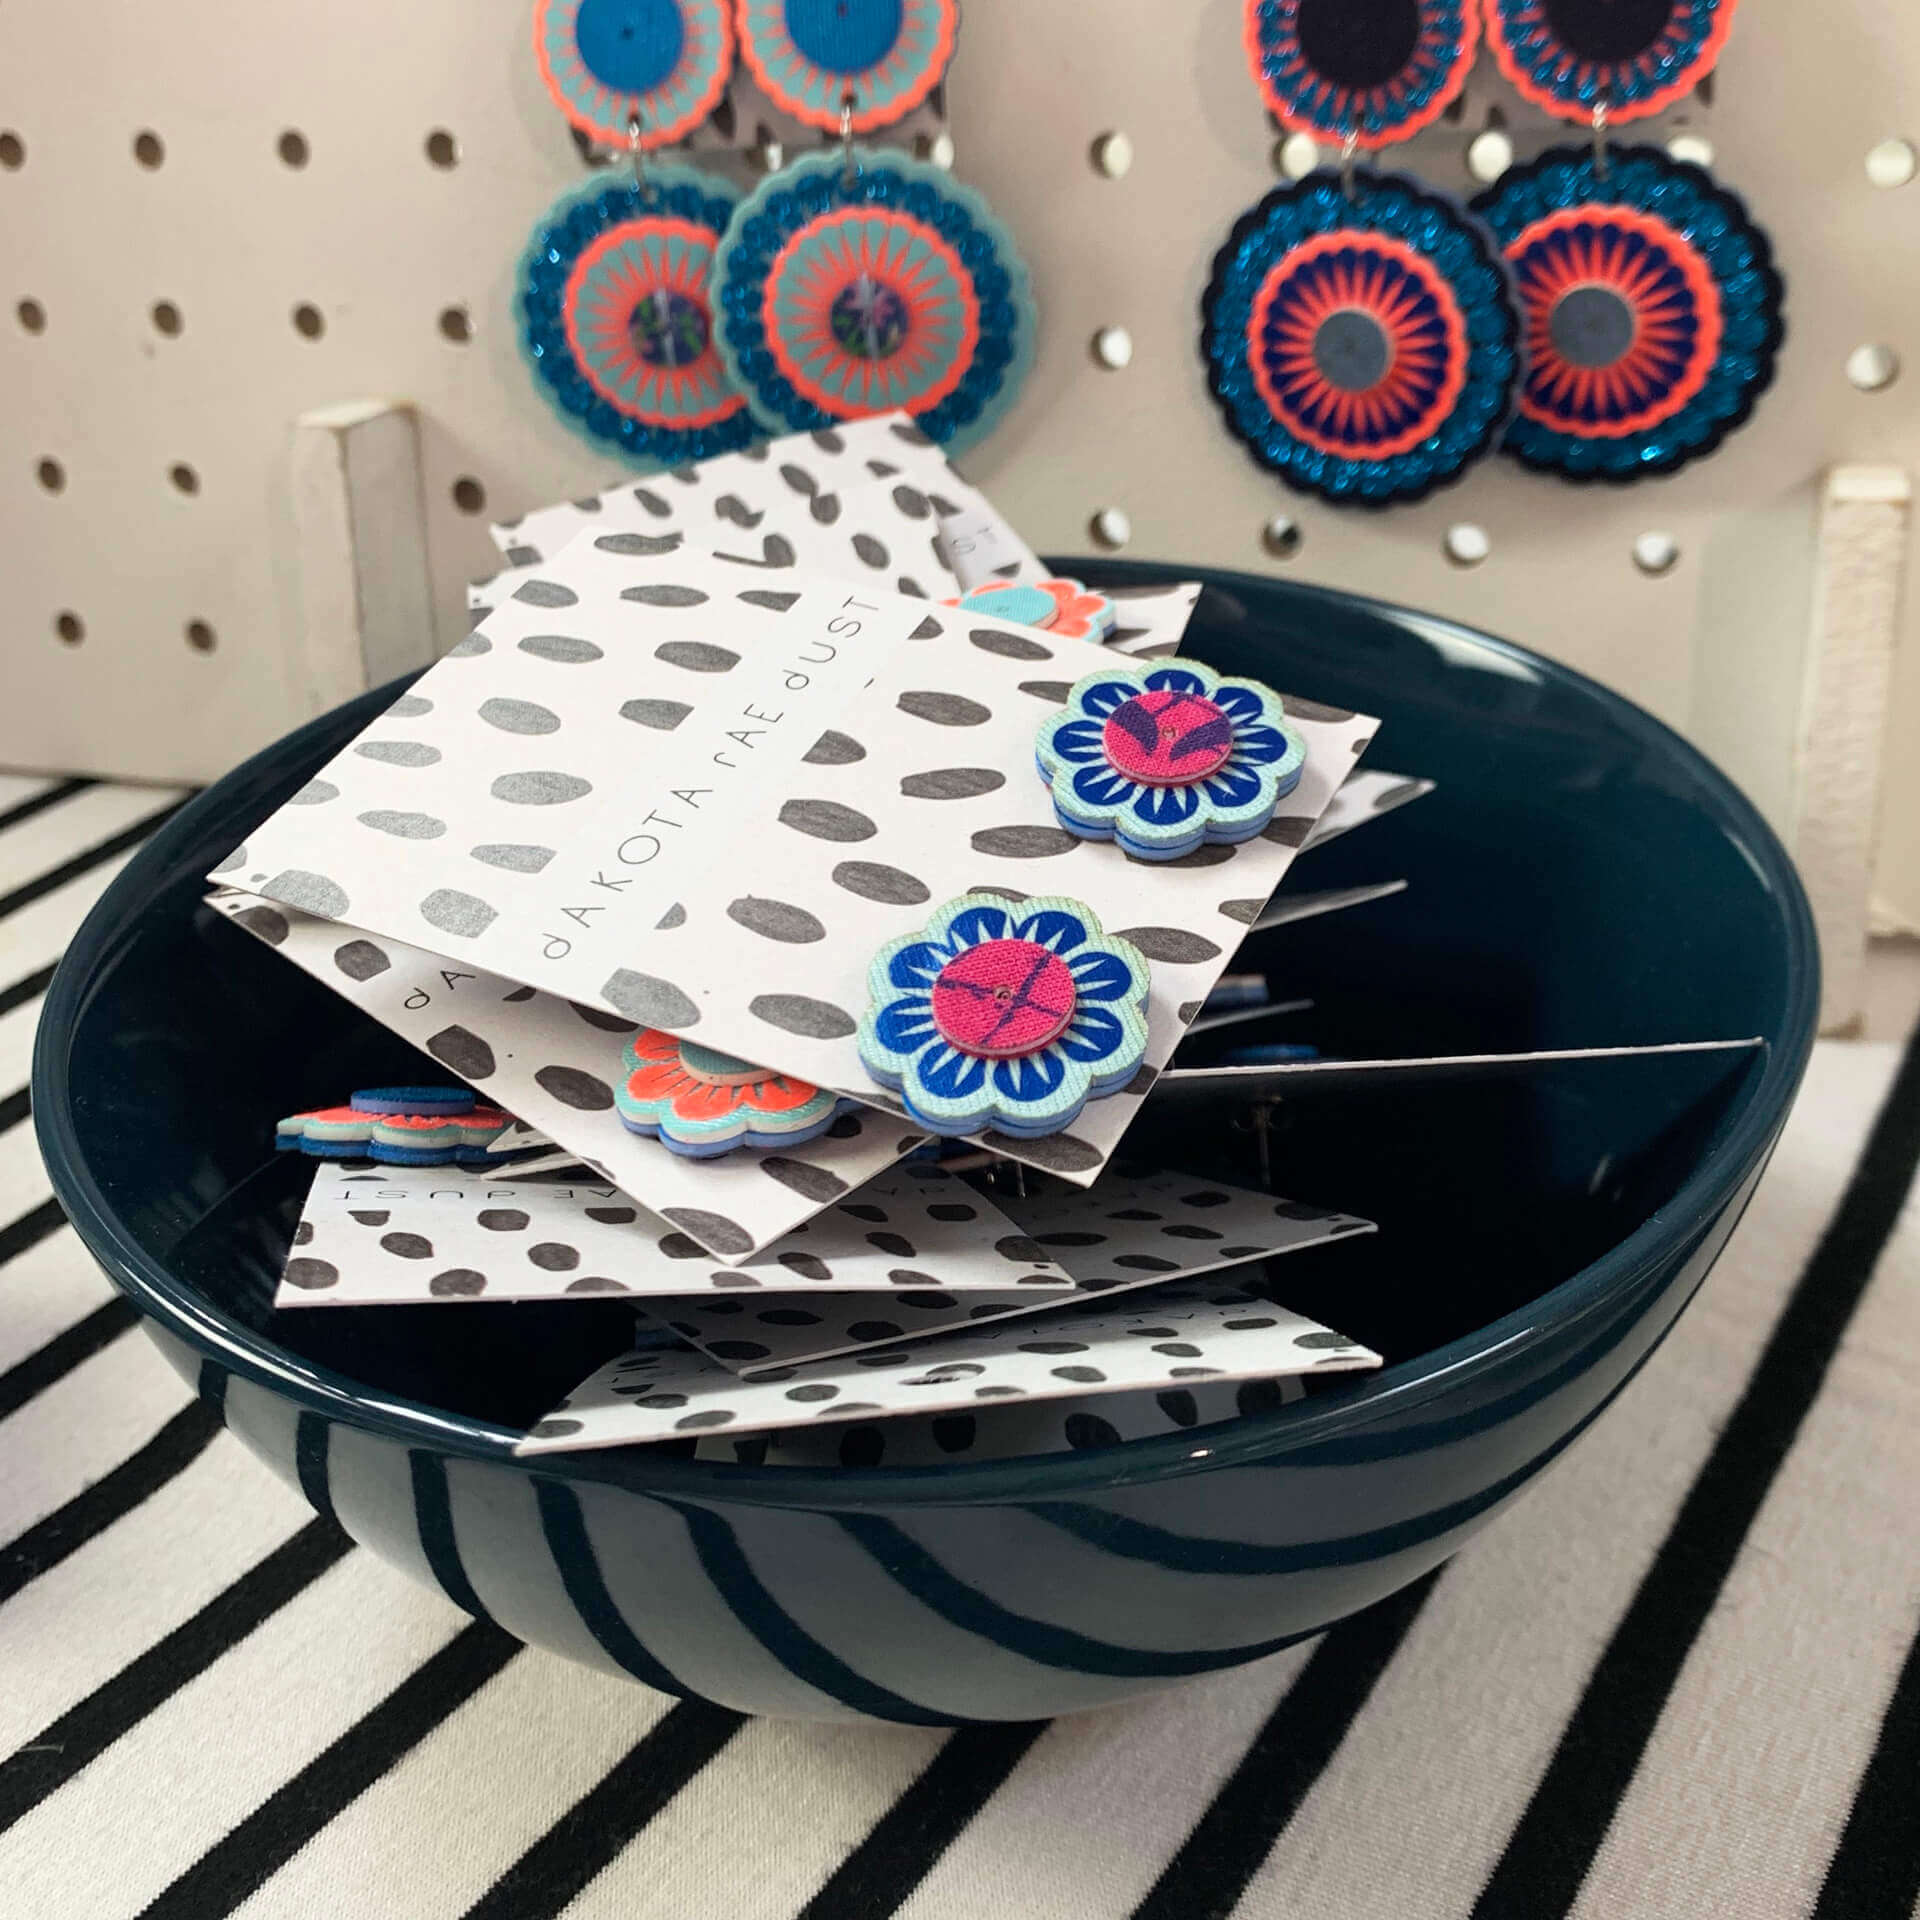 A black bowl filled with colourful flower shaped stud earrings, backed on patterned cards